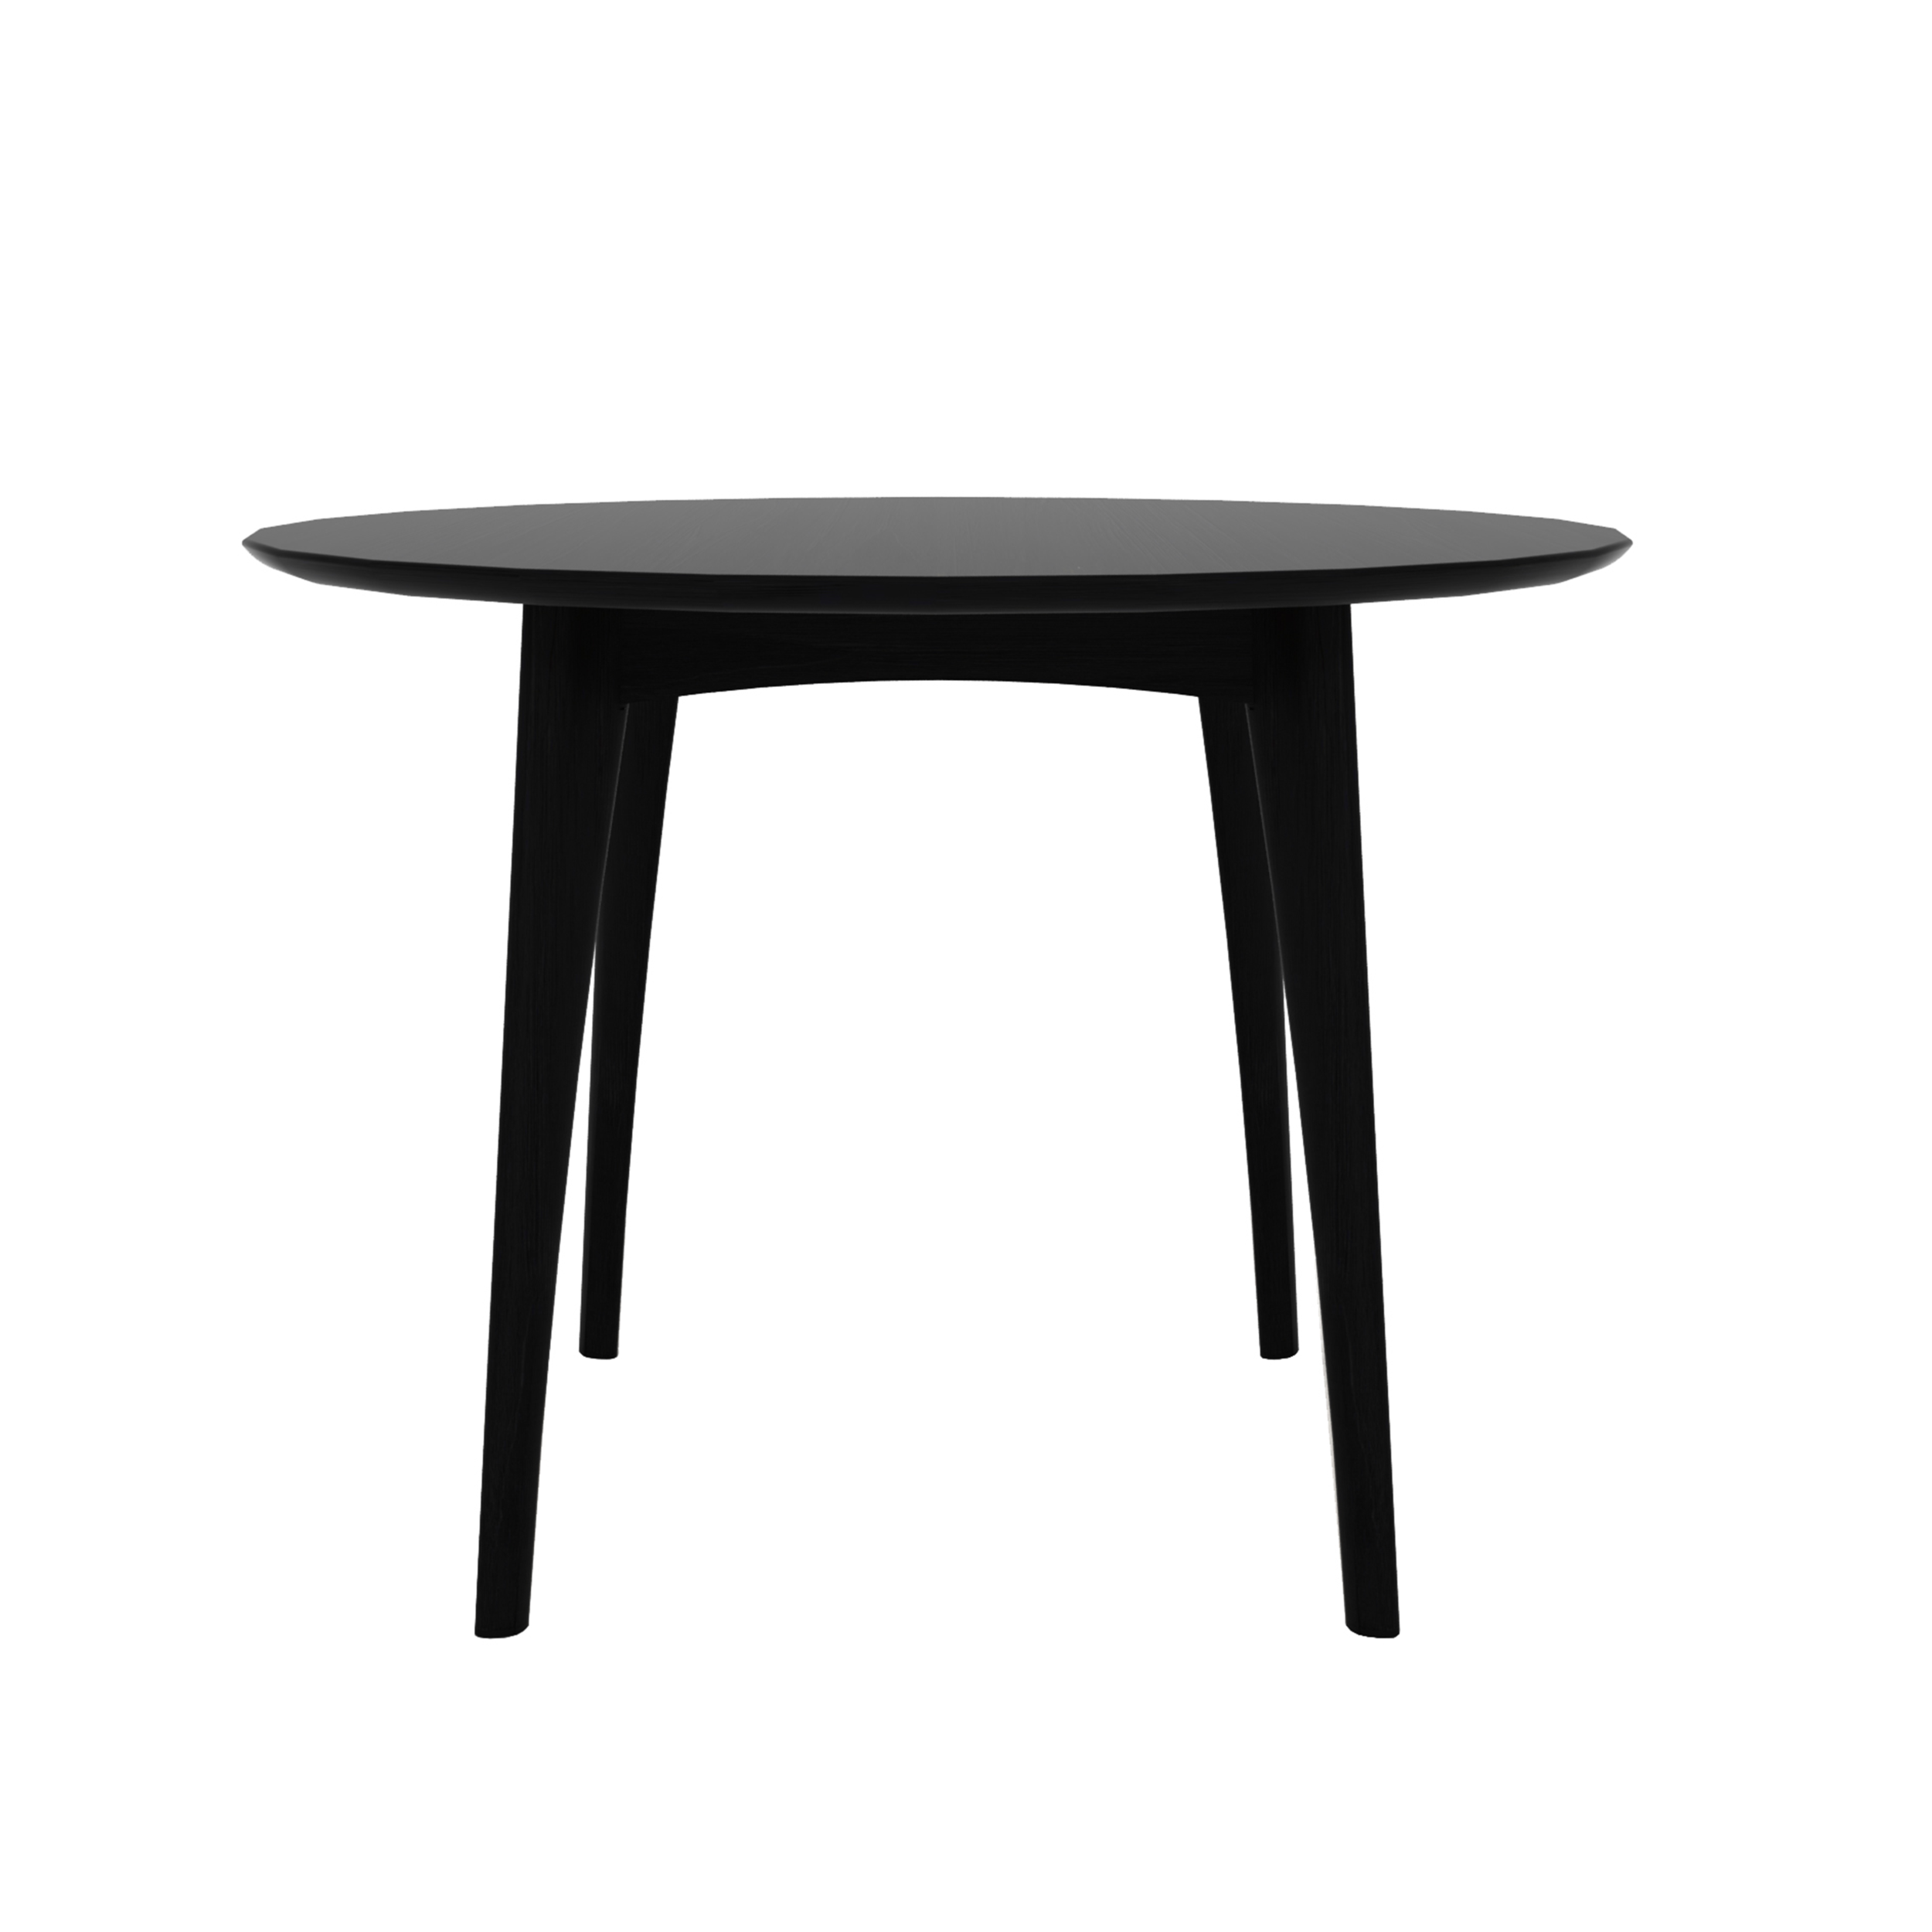 53037 Osso round table high - Oak black.jpg.png